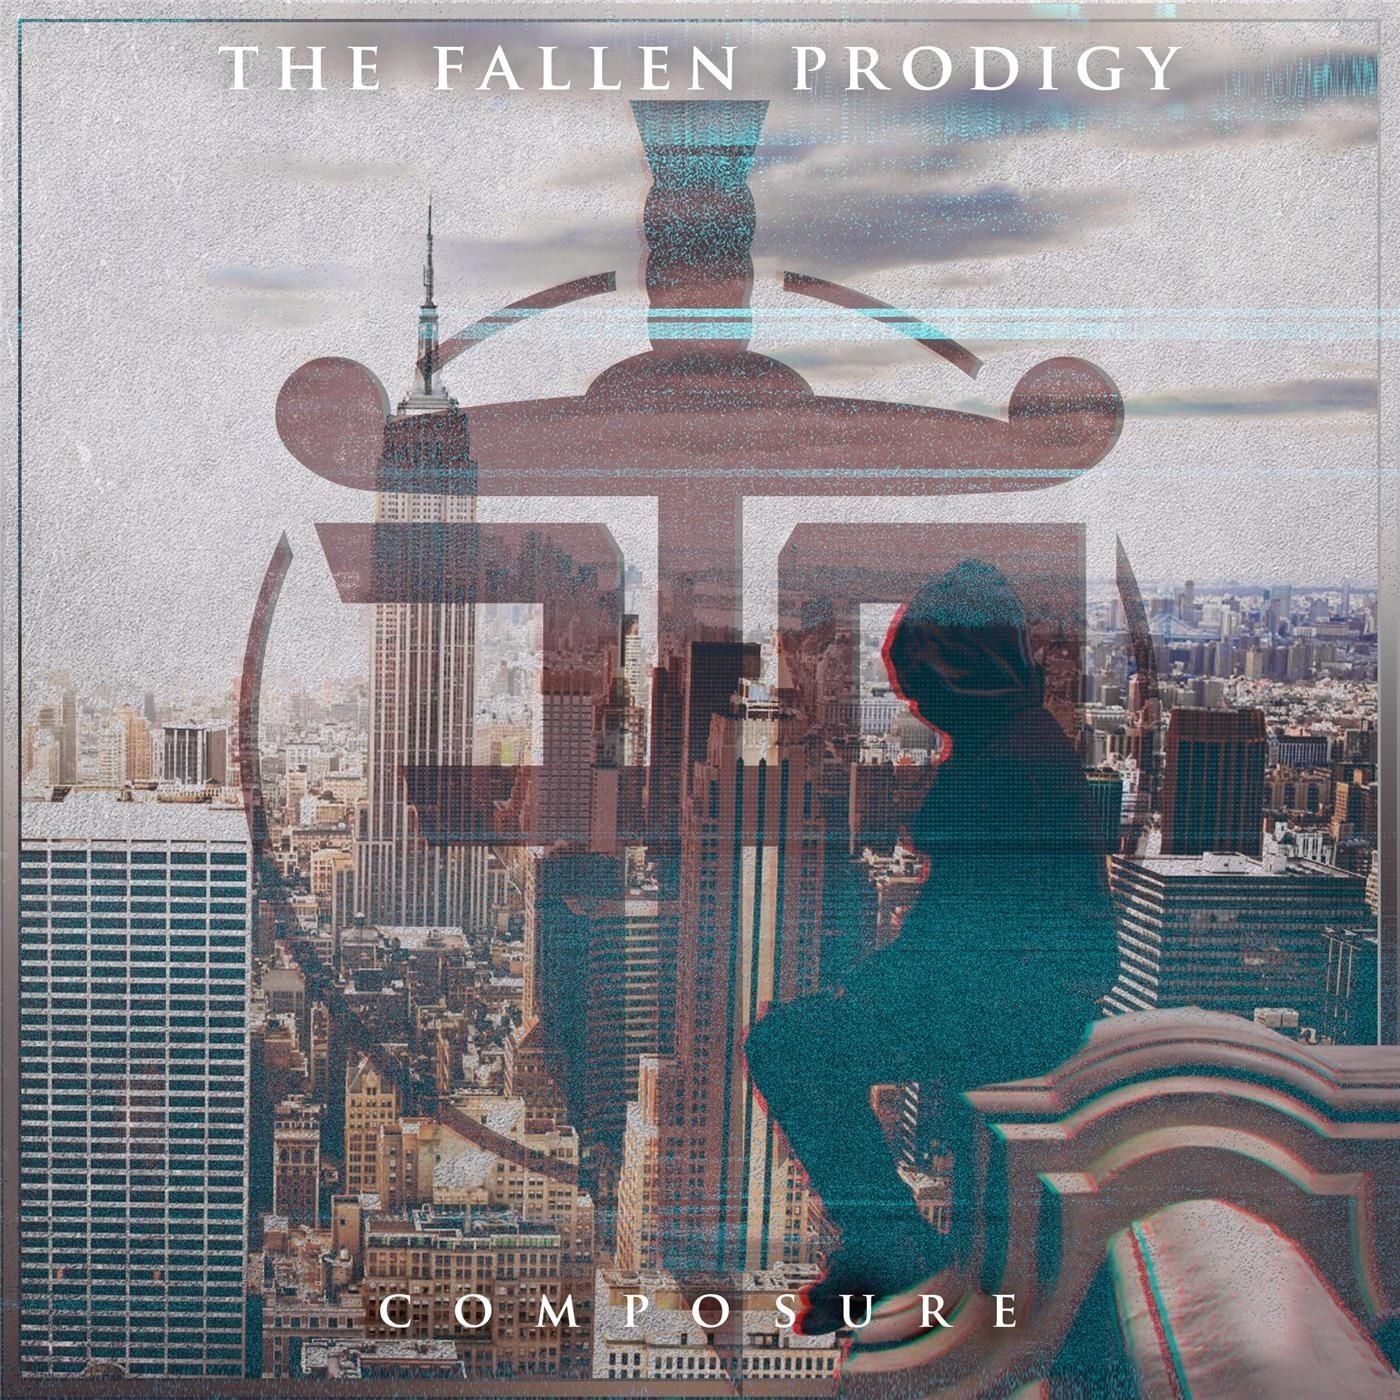 The Fallen Prodigy - Composure [single] (2017)